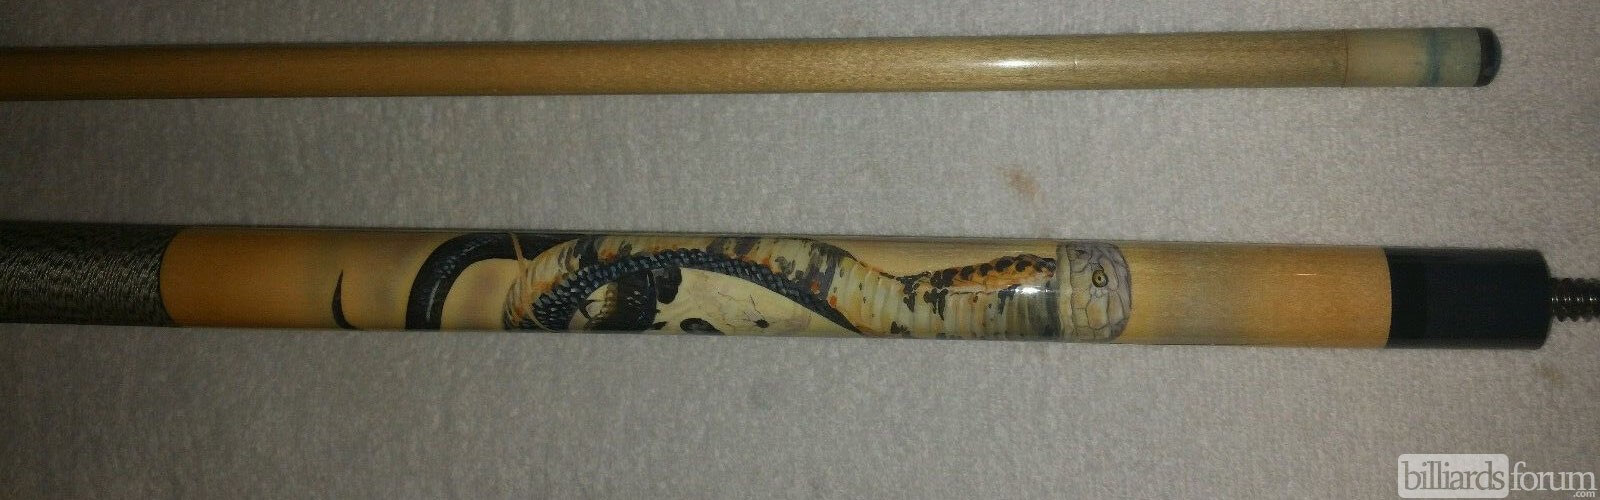 McDermott EL6 Cobra Cue by Doughty 1